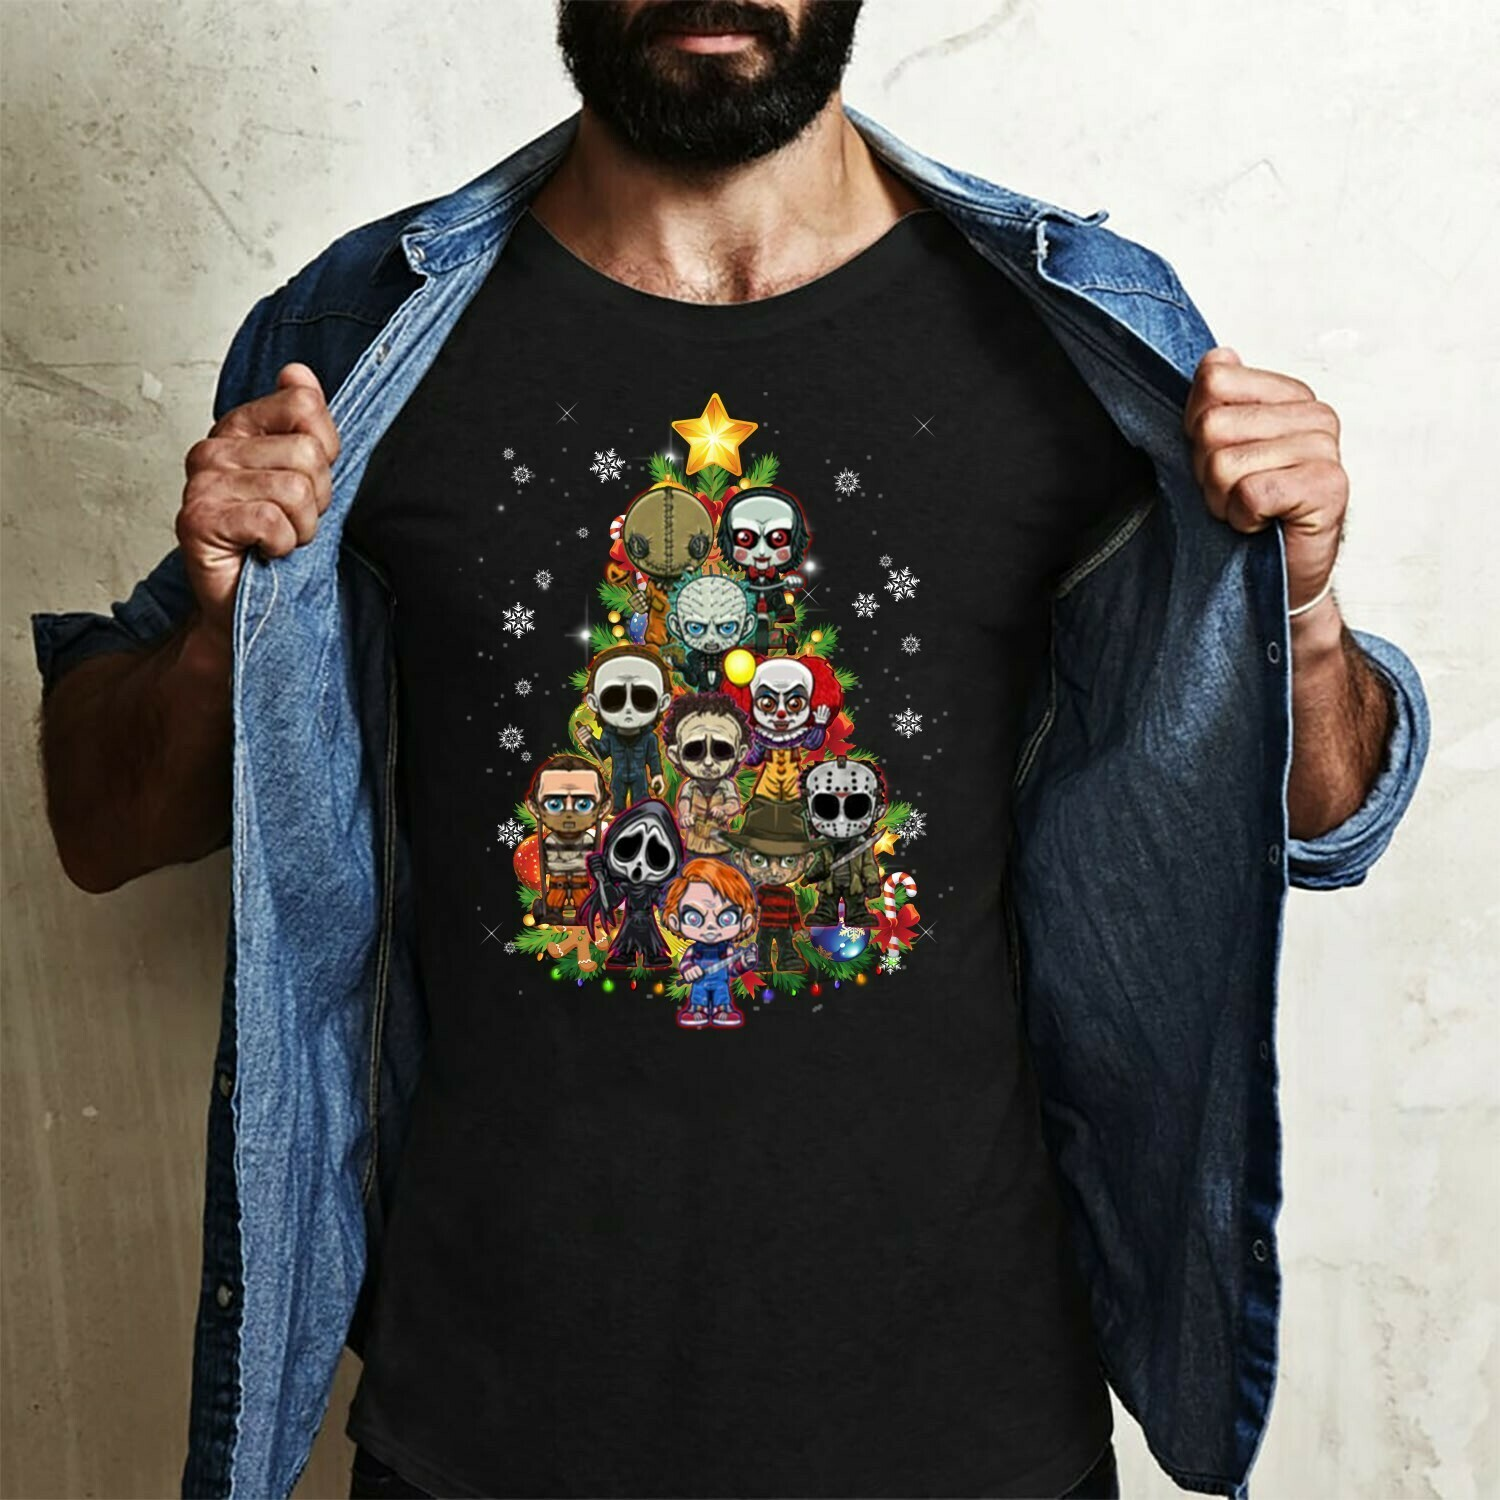 Horror Character Christmas Tree Squad IT Pennywise Chucky Jason Voorhees Myers Leatherface Villains Halloween Horror Movie Mashup T-Shirt Long Sleeve Sweatshirt Hoodie Jolly Family Gifts